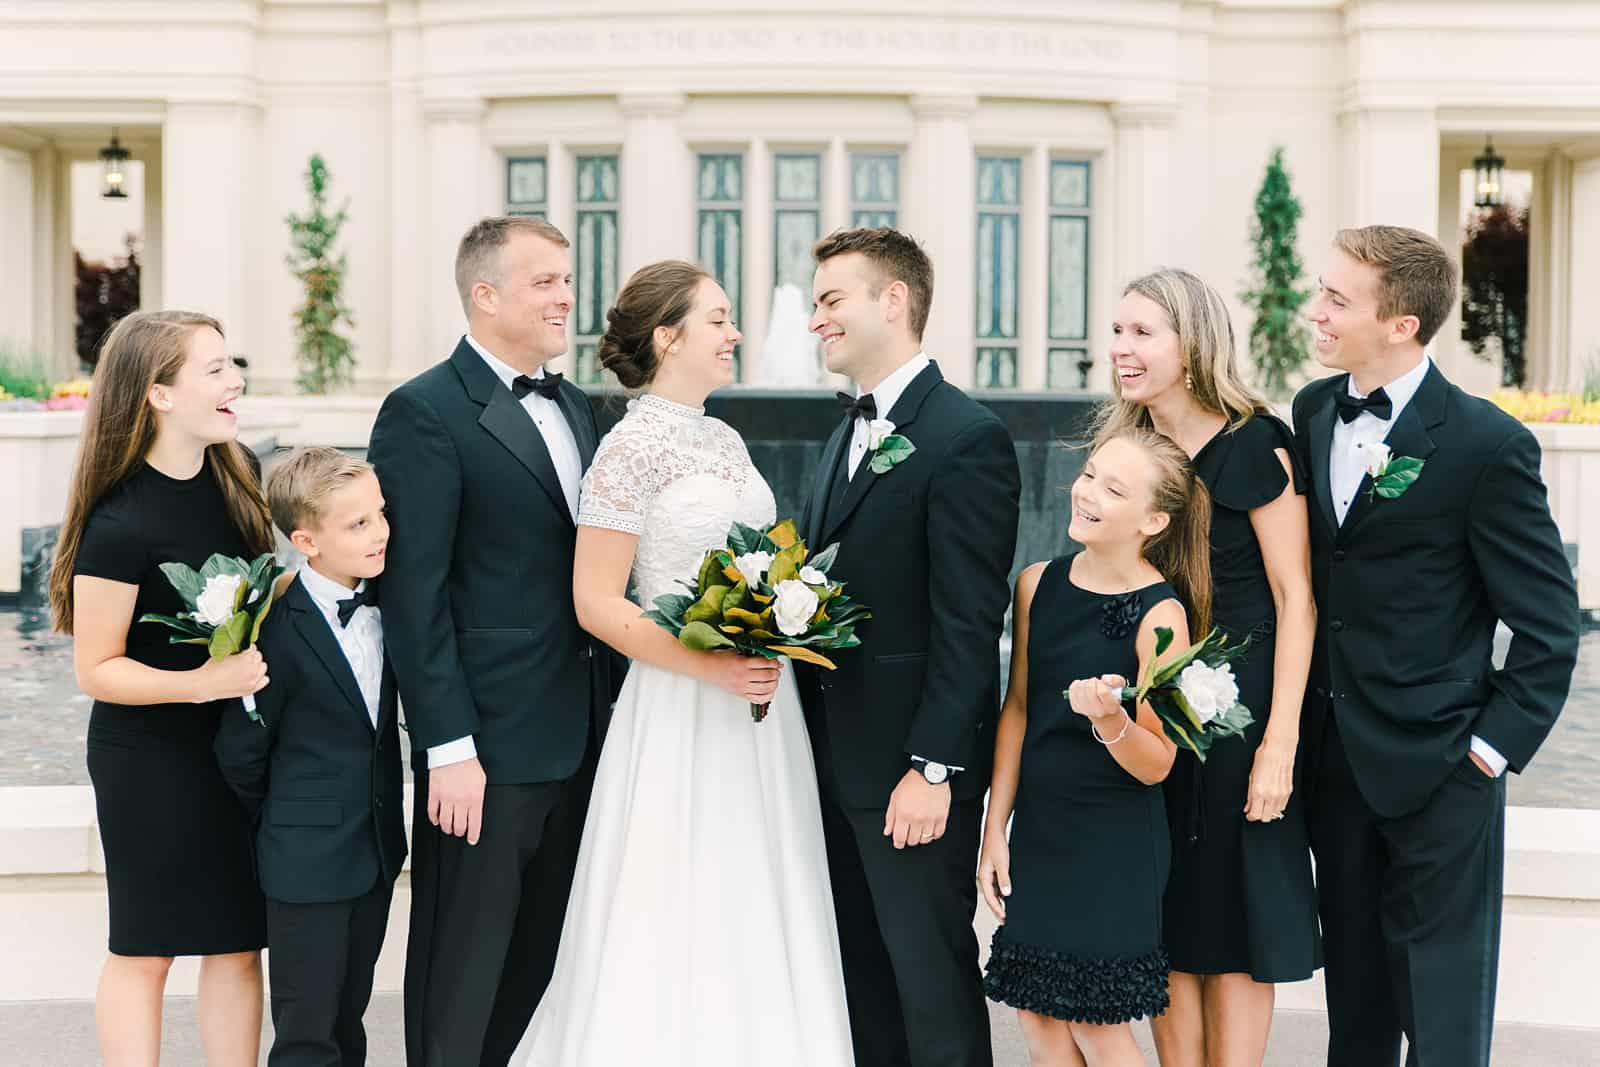 Payson Utah Temple wedding, family pictures in classic black dresses and tuxedos